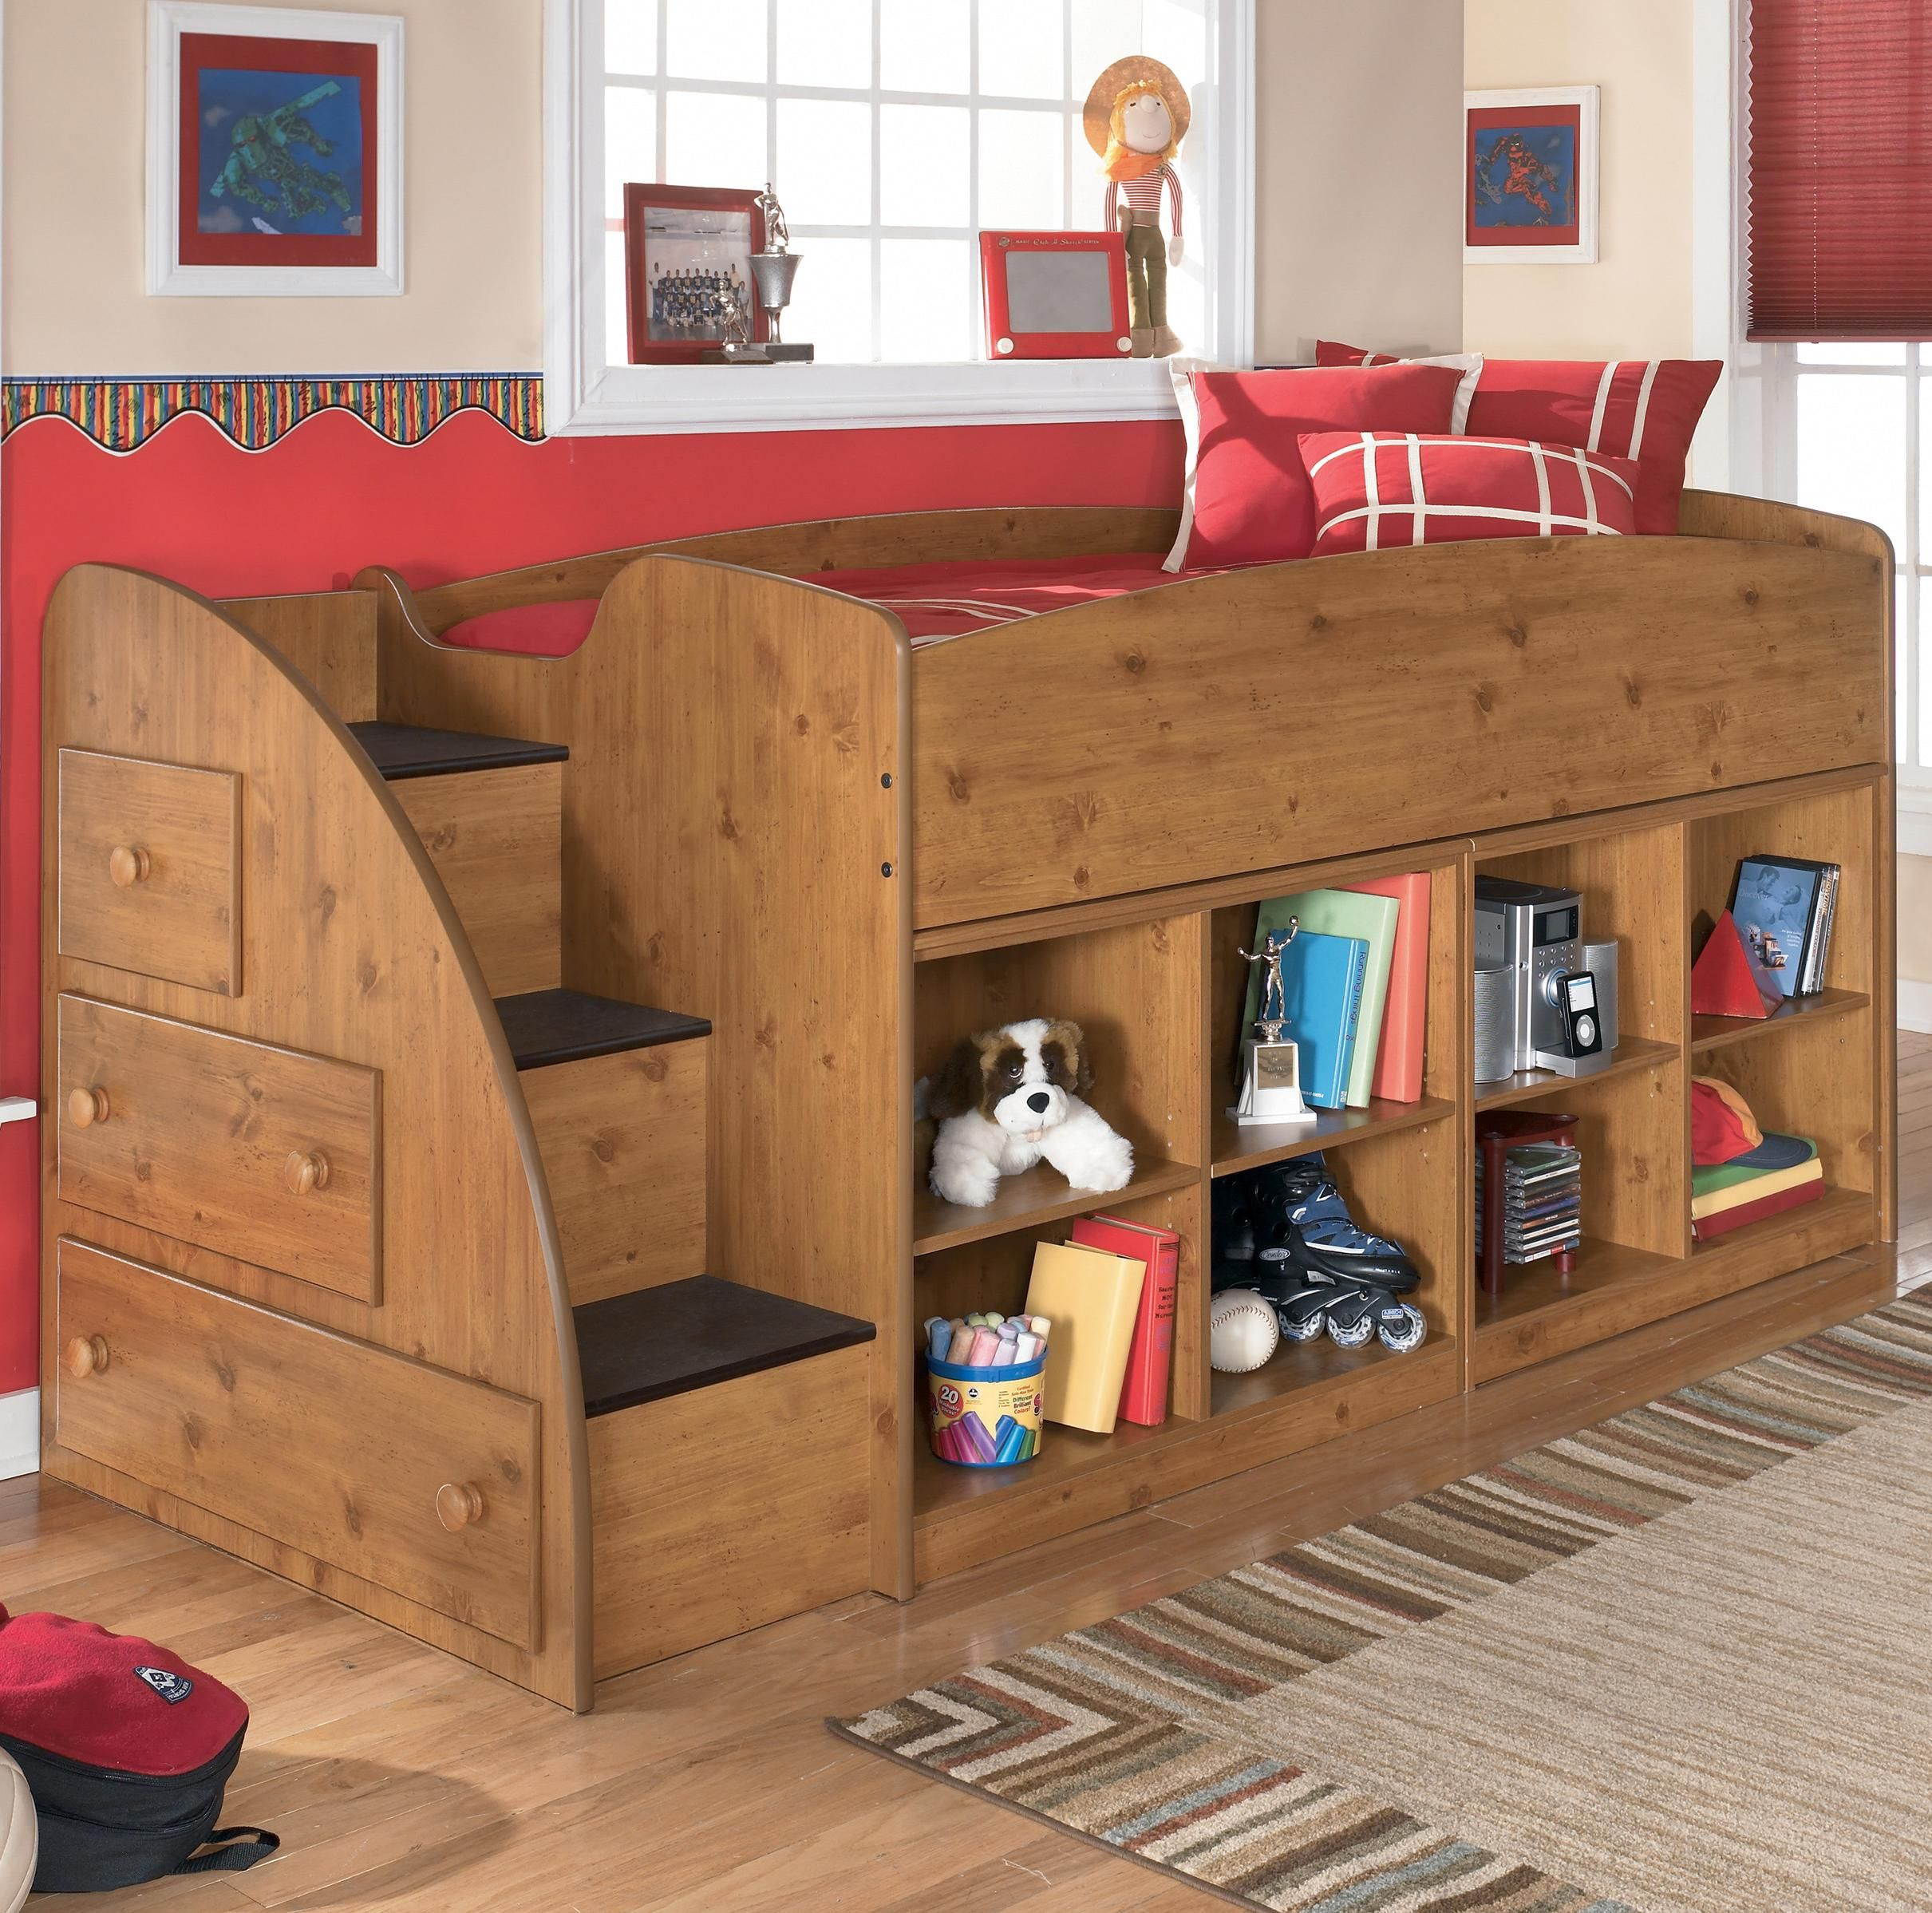 Add The Loft Bed With Tons Of Storage To Your Youth Bedroom